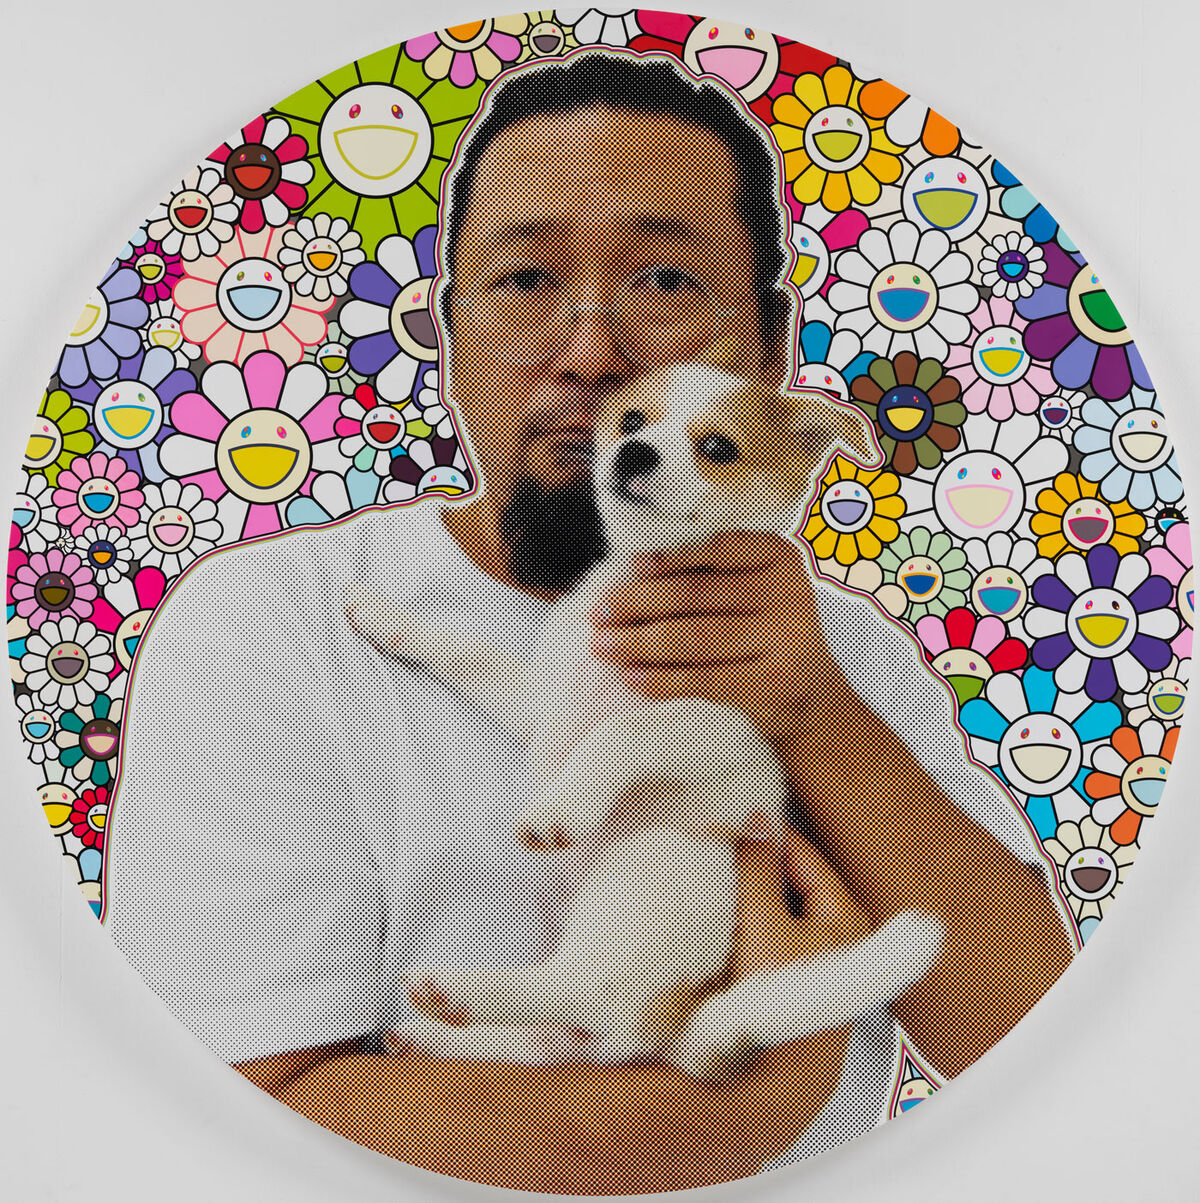 Takashi Murakami, In 2019, a Sentimental Memory of POM and Me, 2019. ©︎ 2019 Takashi Murakami/Kaikai Kiki Co., Ltd. All Rights Reserved. Courtesy of Gagosian.